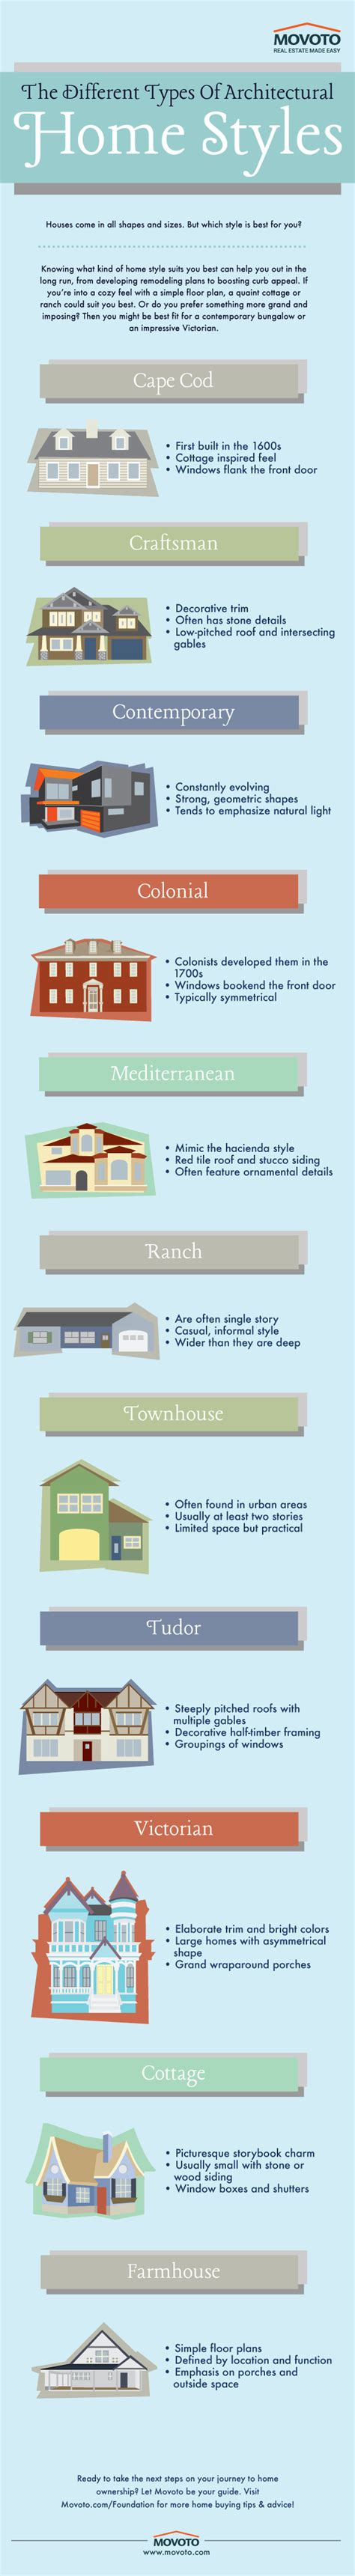 types of architectural styles infographic how to identify the different styles of home